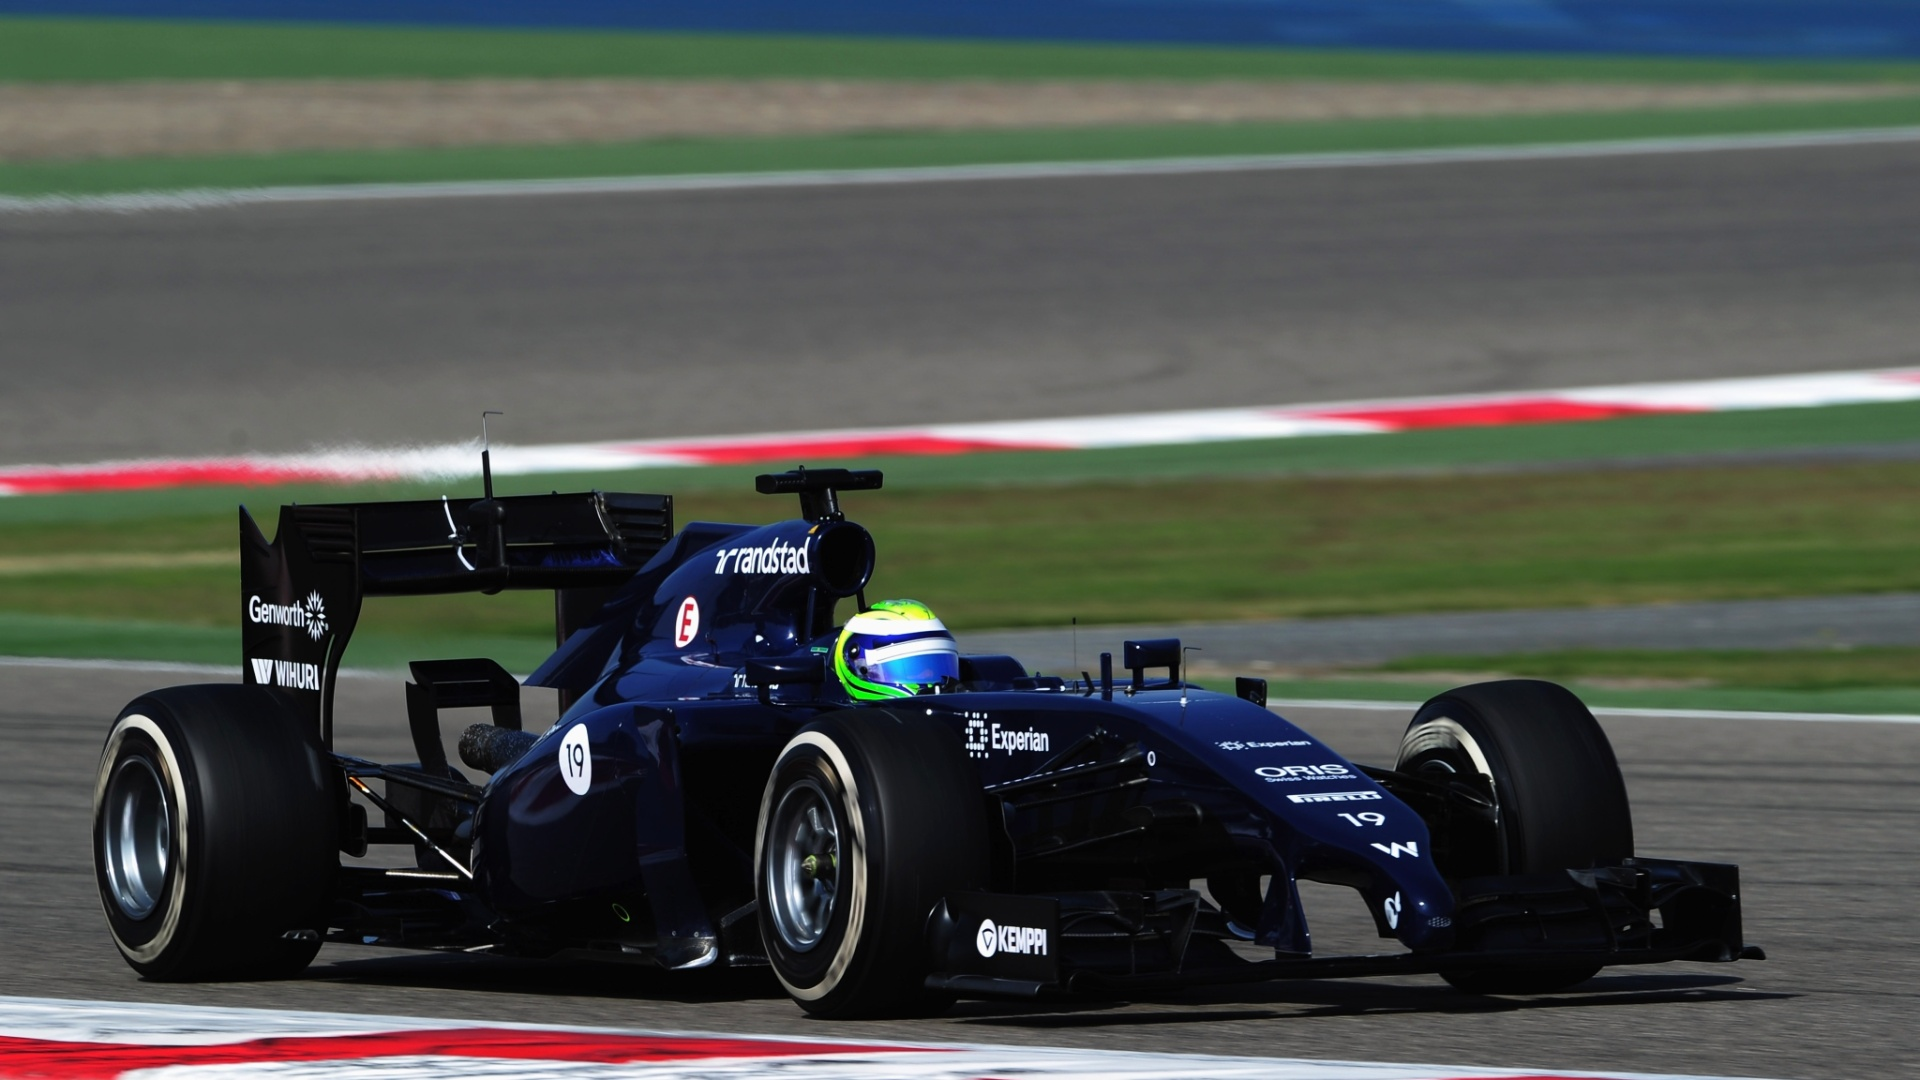 01.mar.2014 - Felipe Massa levou a Williams para a pista neste sábado no Bahrein